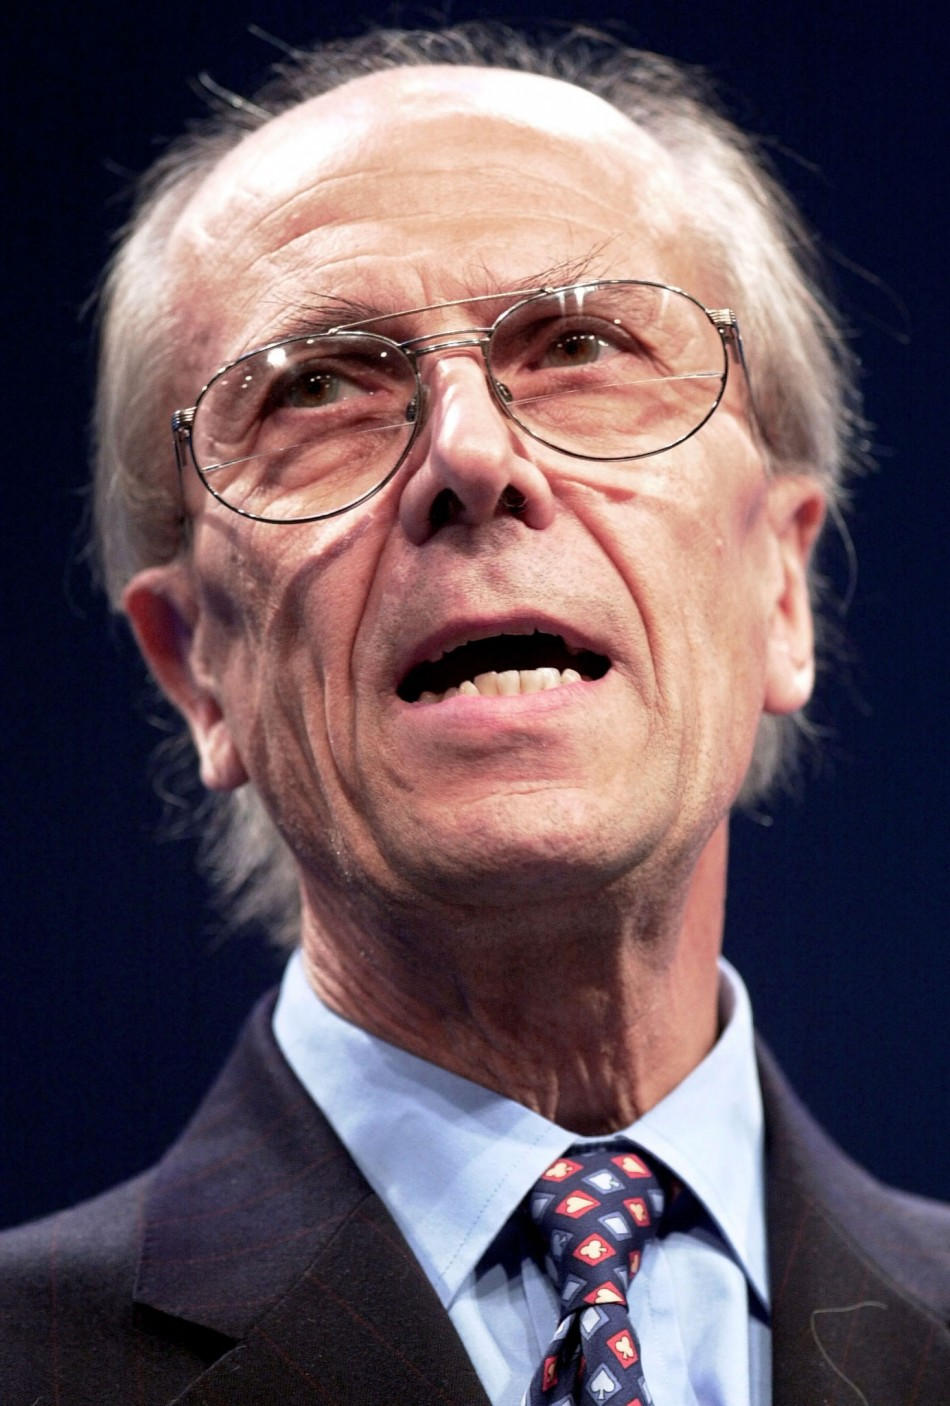 Lord Tebbit has called for the re-introduction of the death penalty following killing of two police officers in Greater Manchester (Reuters)